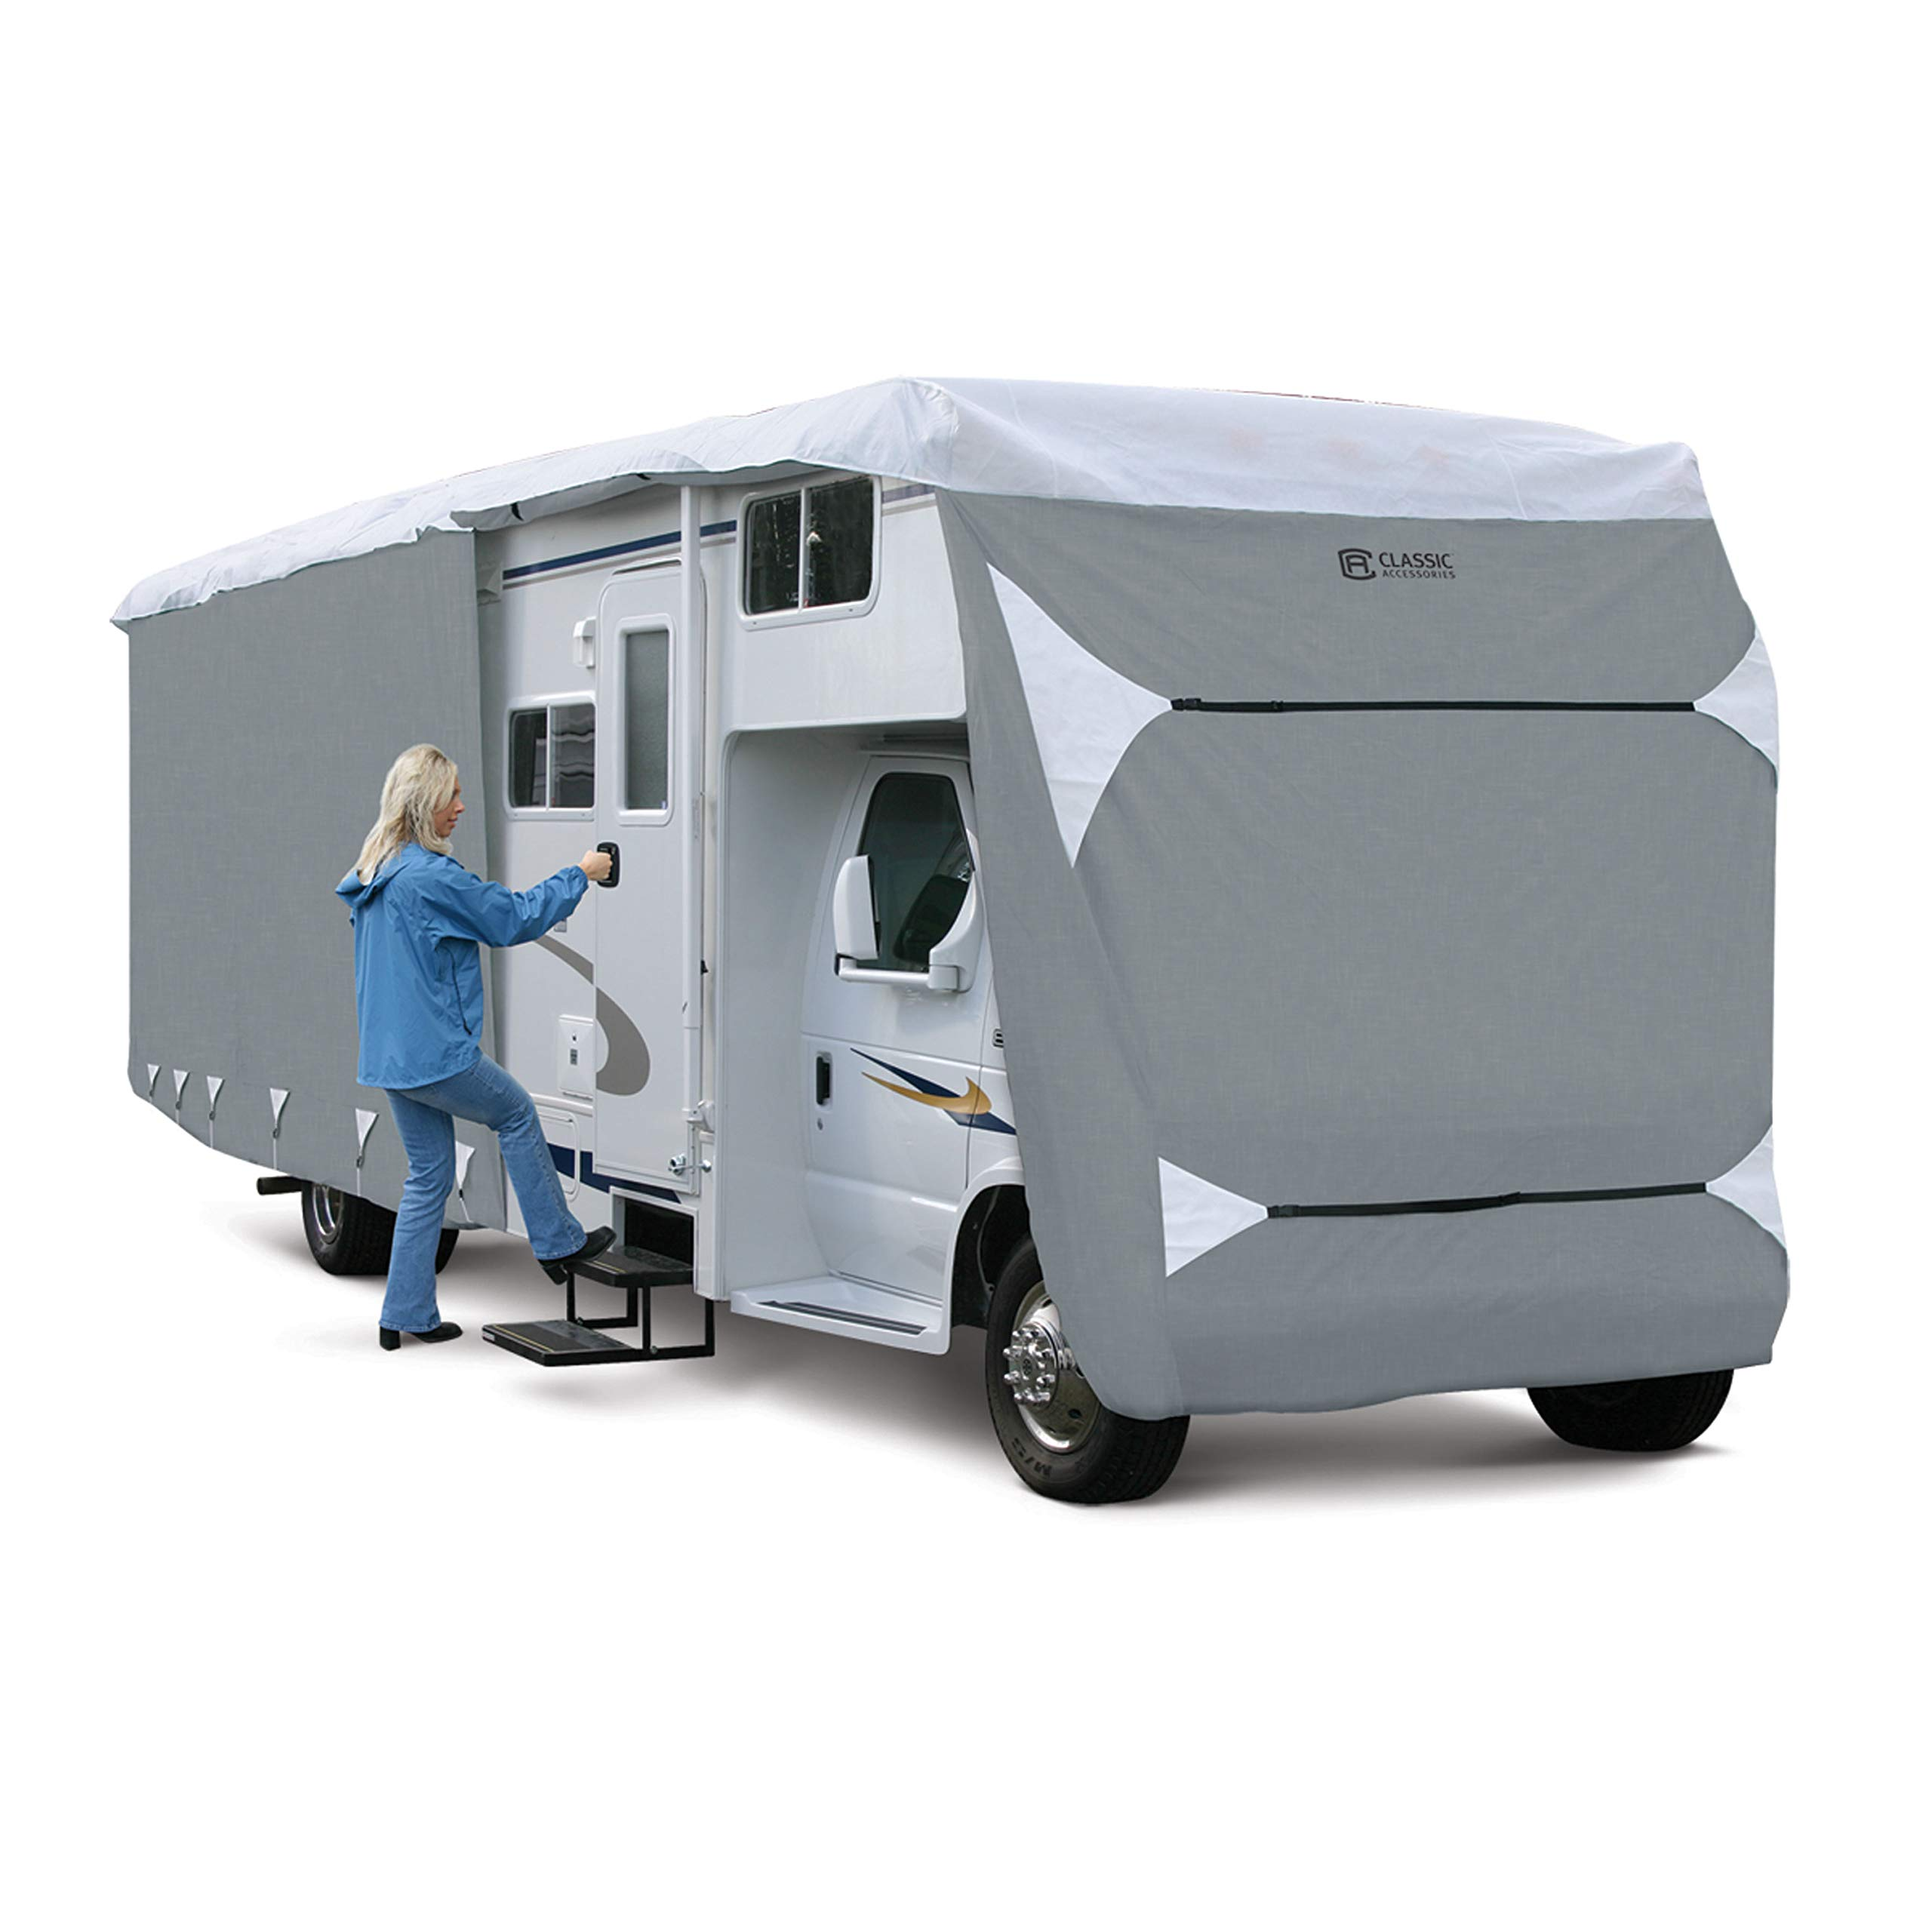 Classic Accessories OverDrive PolyPro 3 Deluxe Class C RV Cover, Fits 32' - 35' RVs